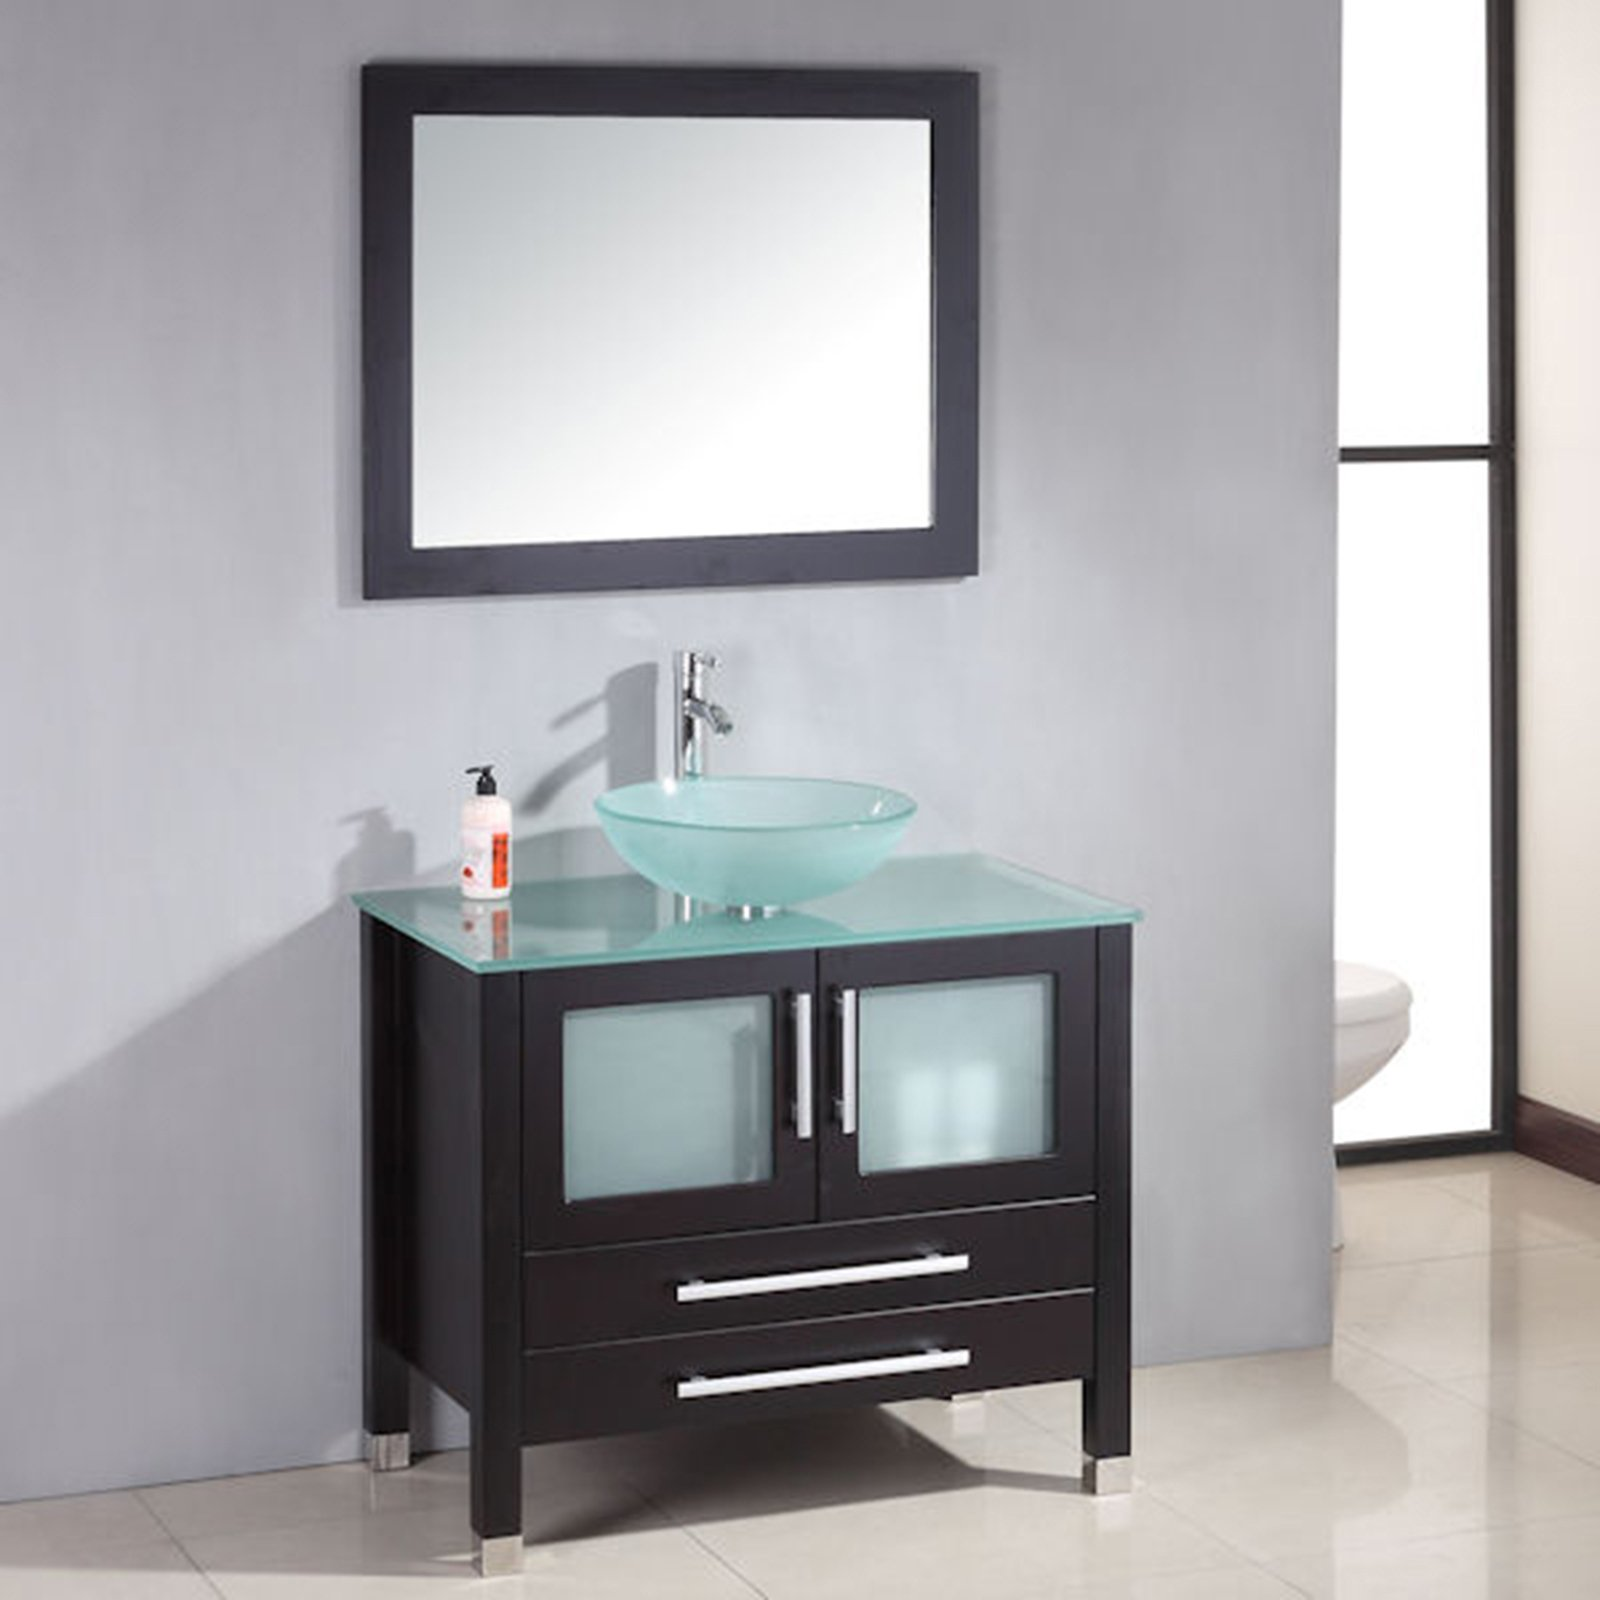 36 Inch Espresso Solid Wood Glass Vessel Sink Set- ''Mercer'' (Brushed Nickel Faucet) by The Tub Connection